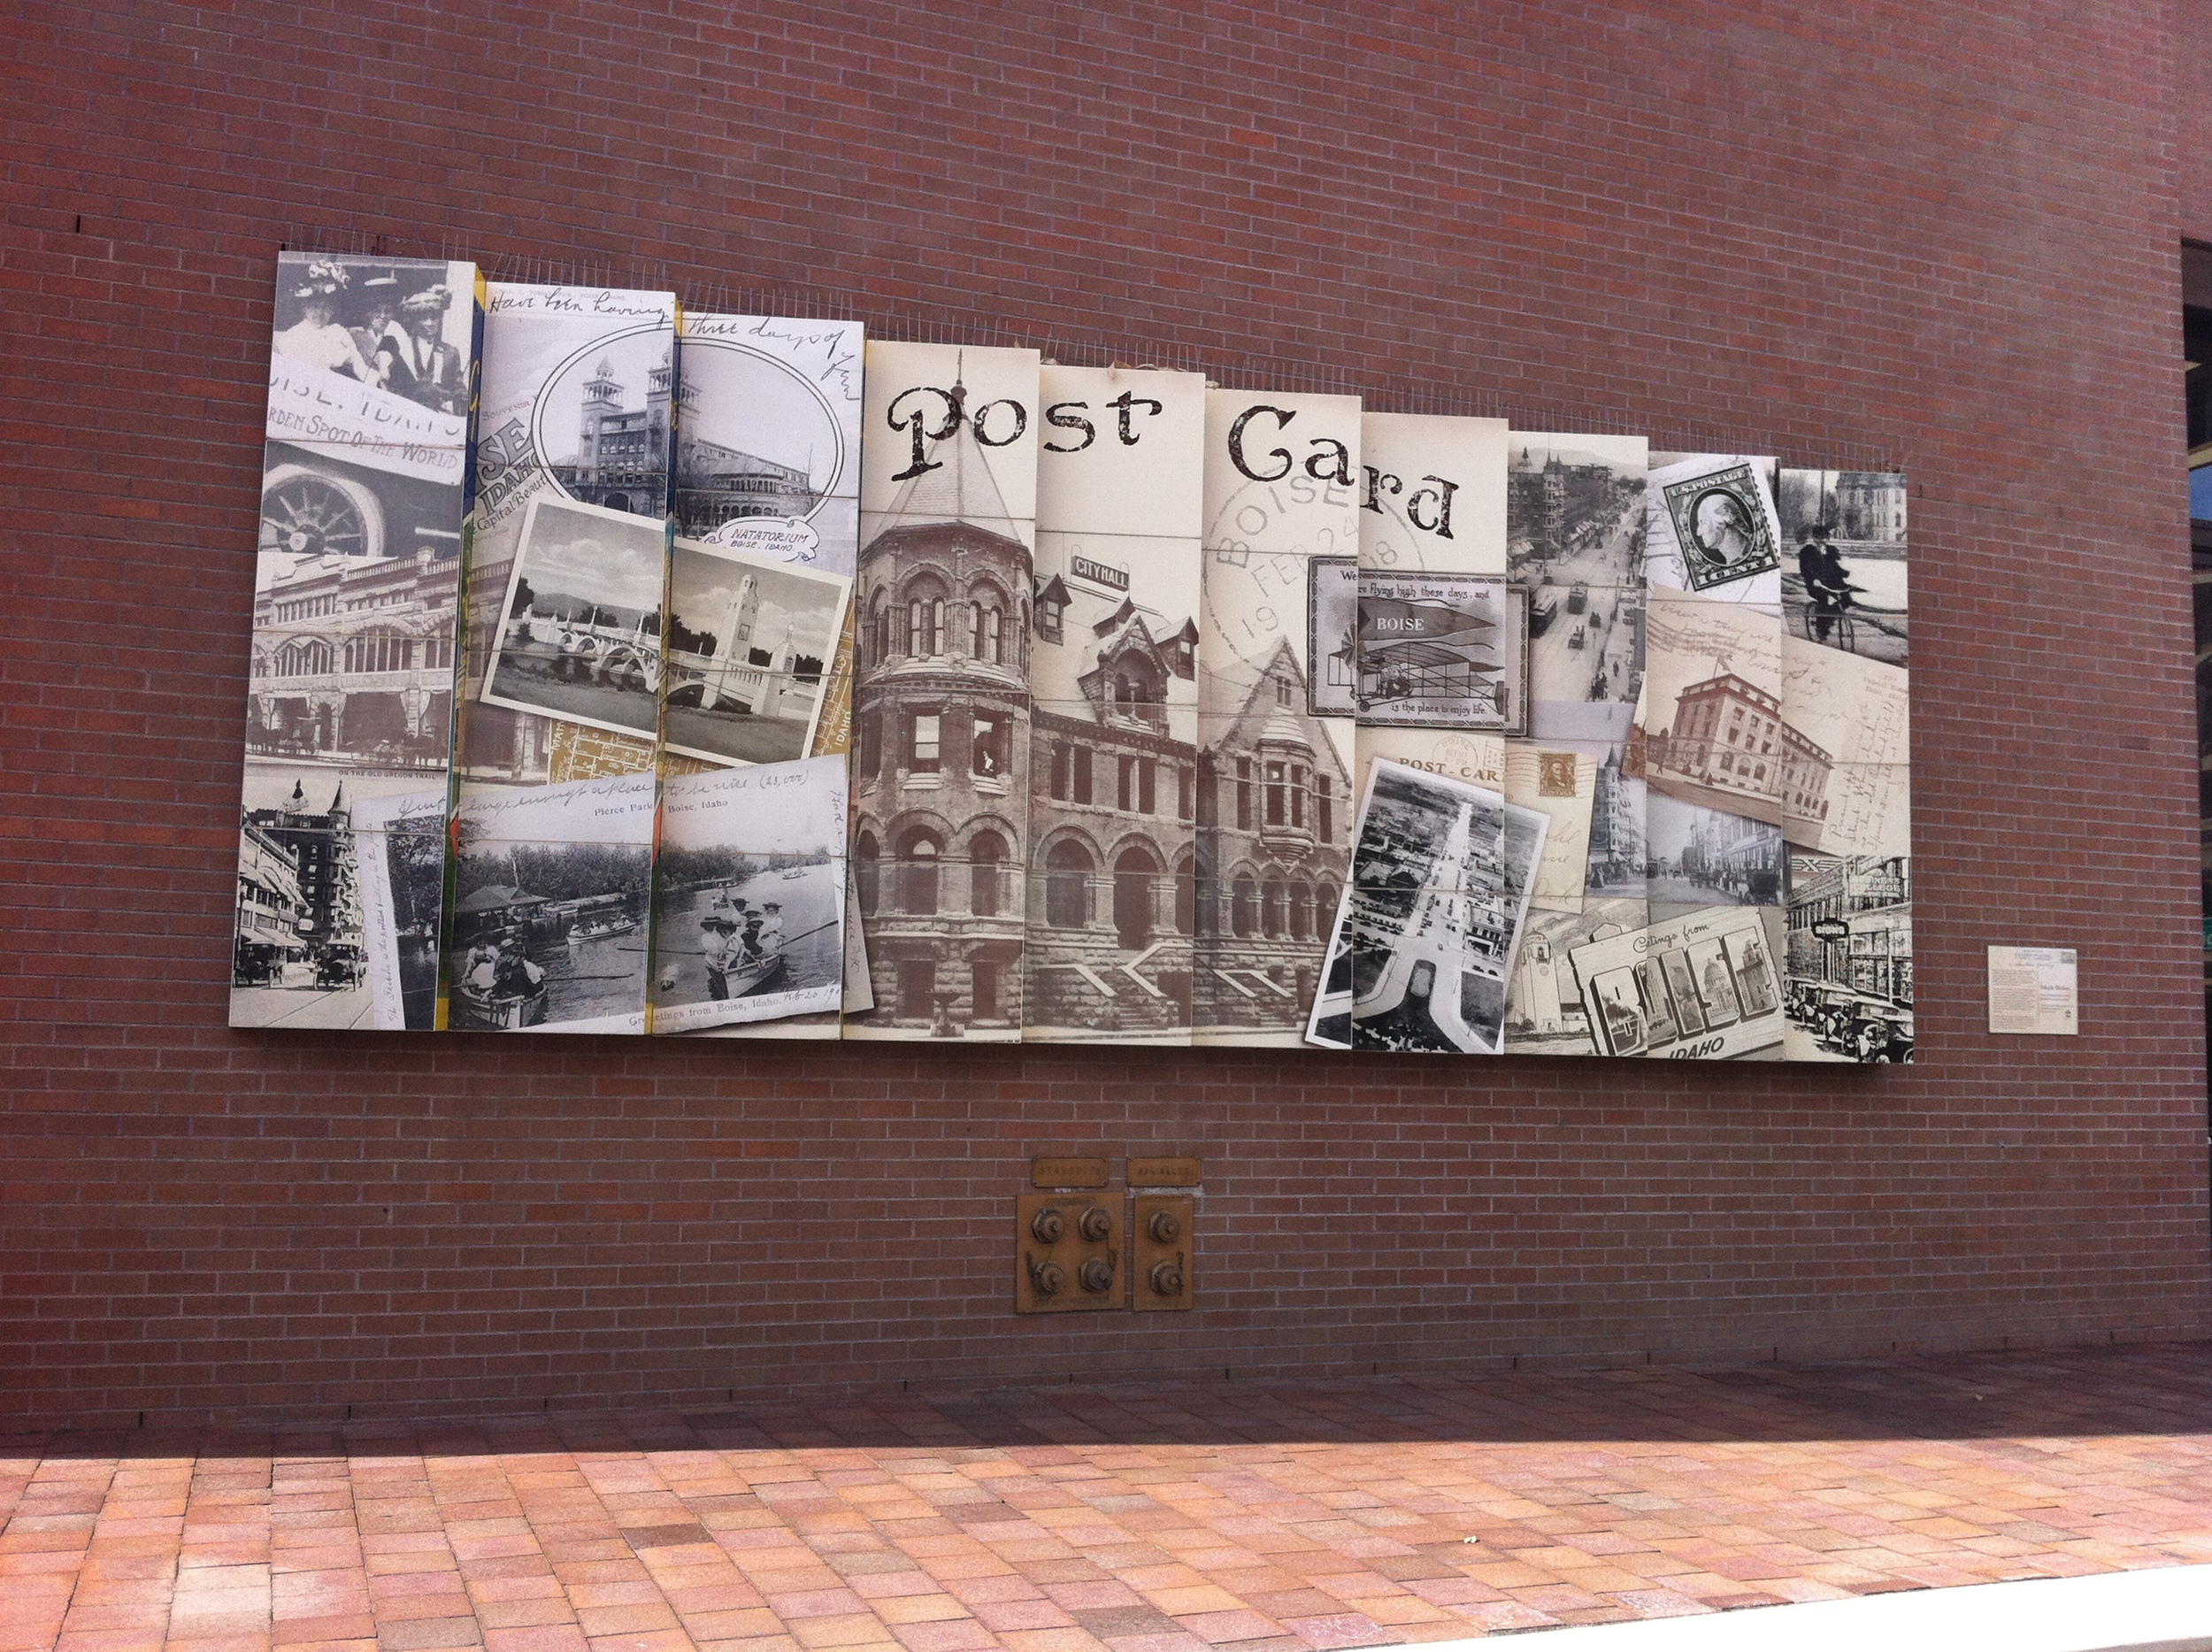 """Mark Baltes mural """"PennyPost Card"""" captures the history of downtown Boise with a bit of contemporary interpretation with its collage of images from old postcards."""